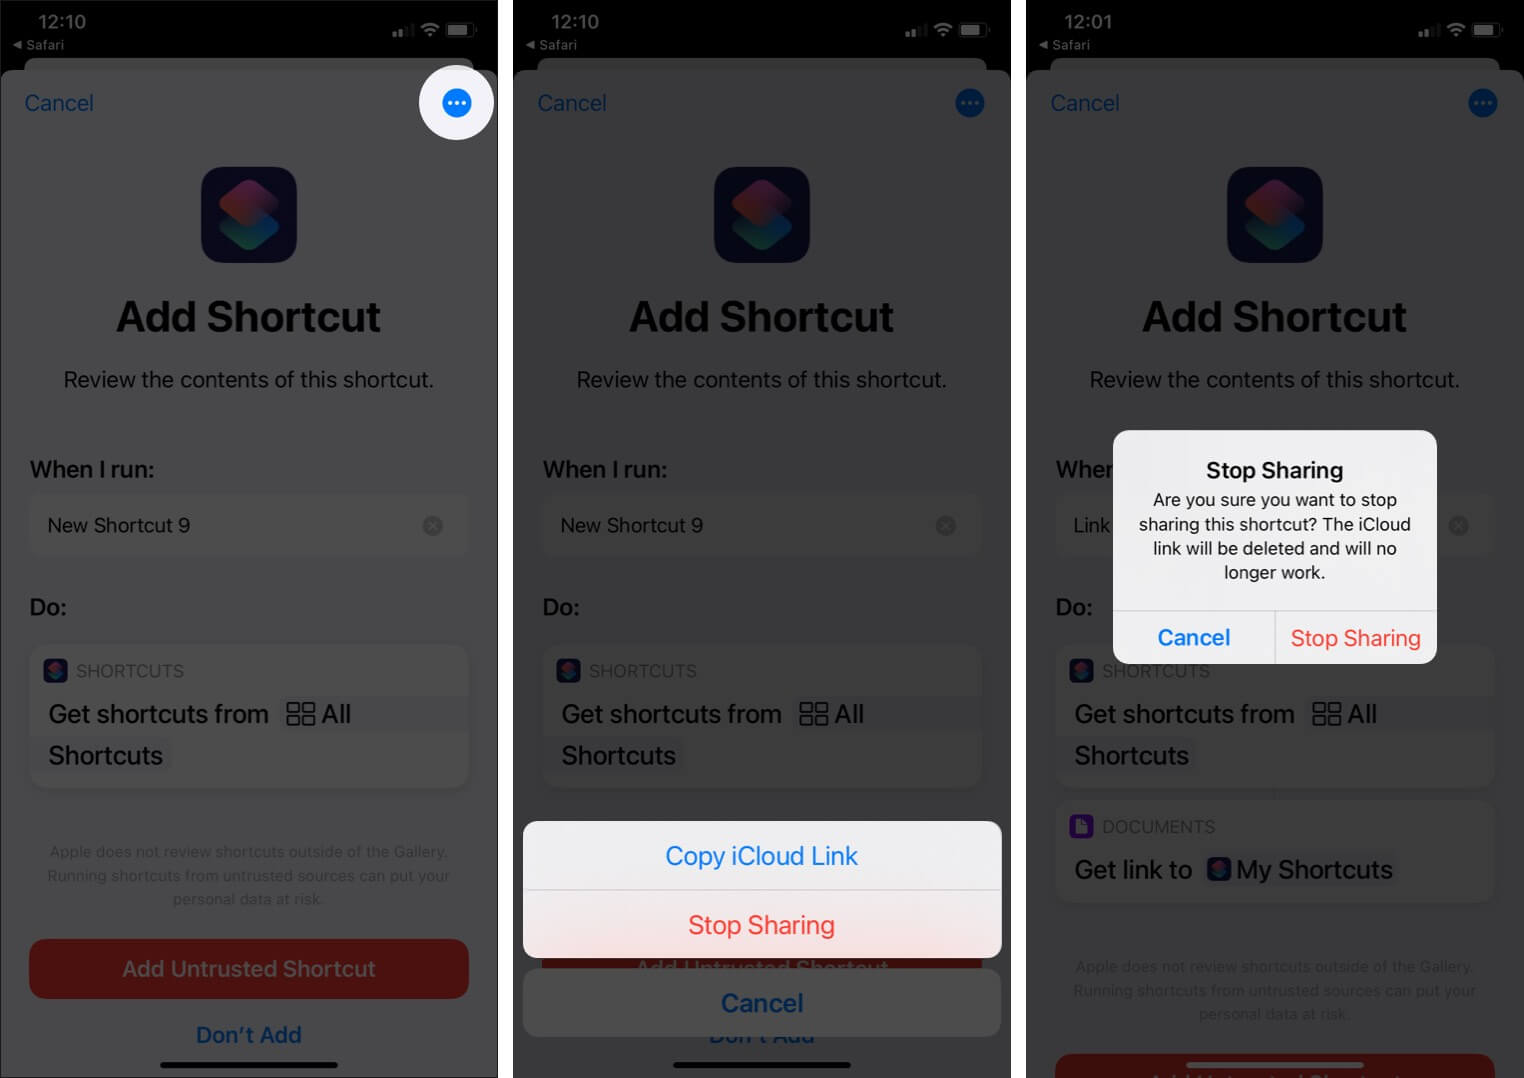 Stop Sharing a Shortcut from iPhone